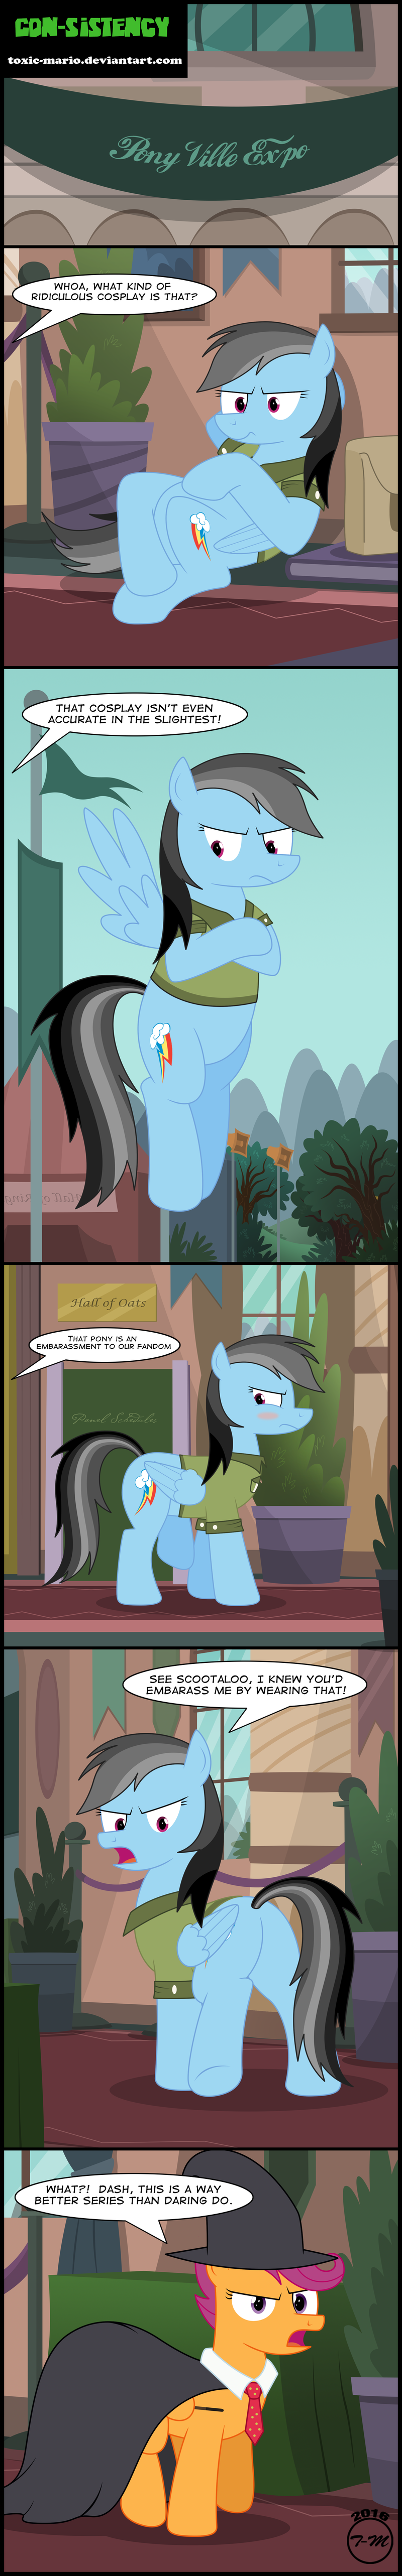 Harry Potter,stranger than fan fiction,comic,daring do,Scootaloo,rainbow dash